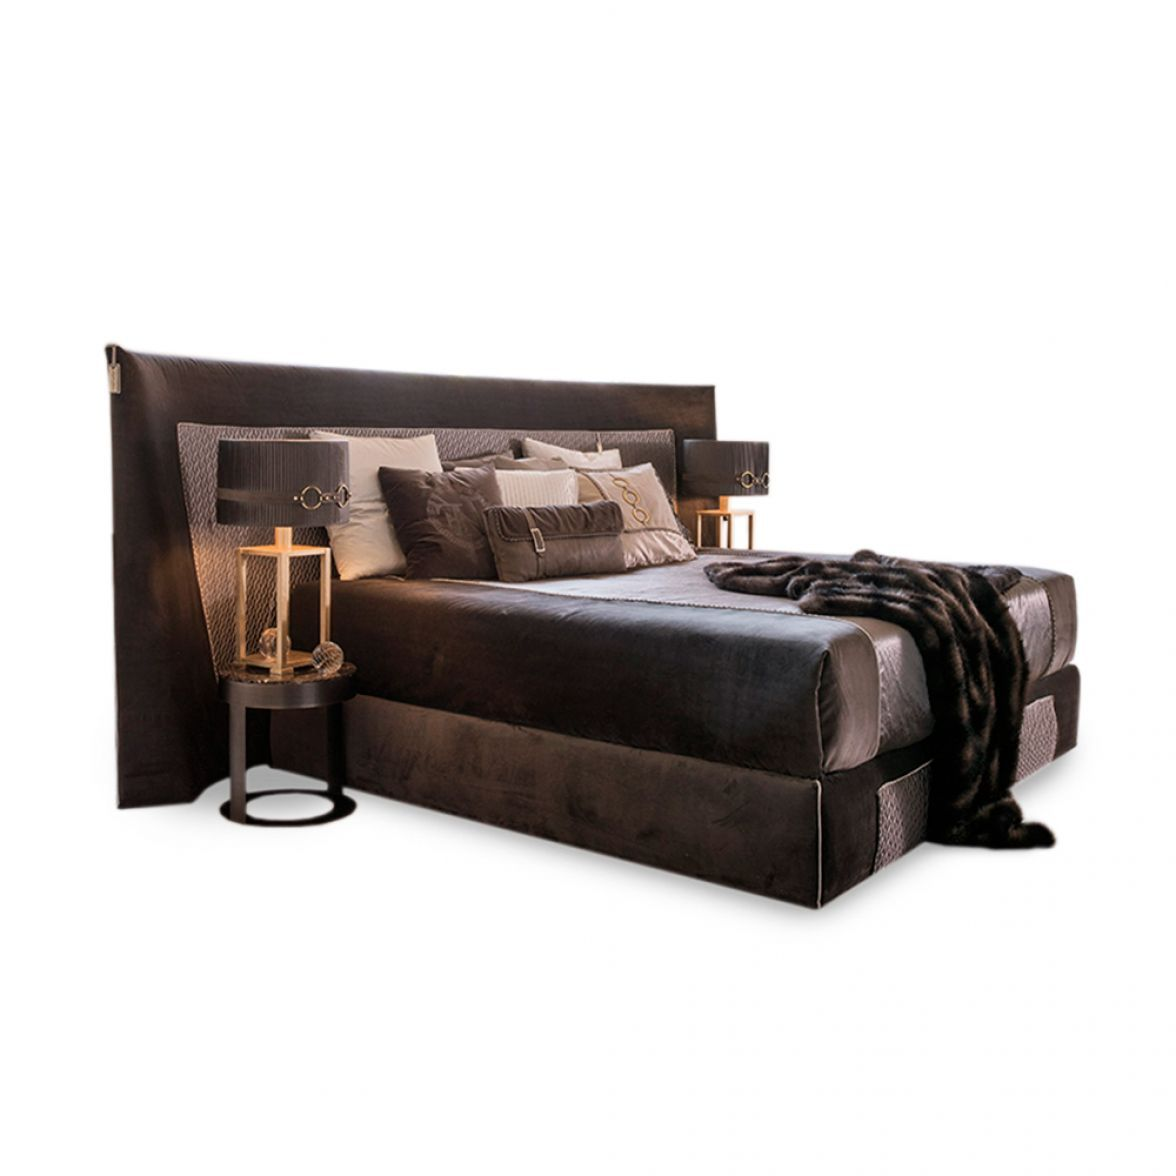 Duse bed